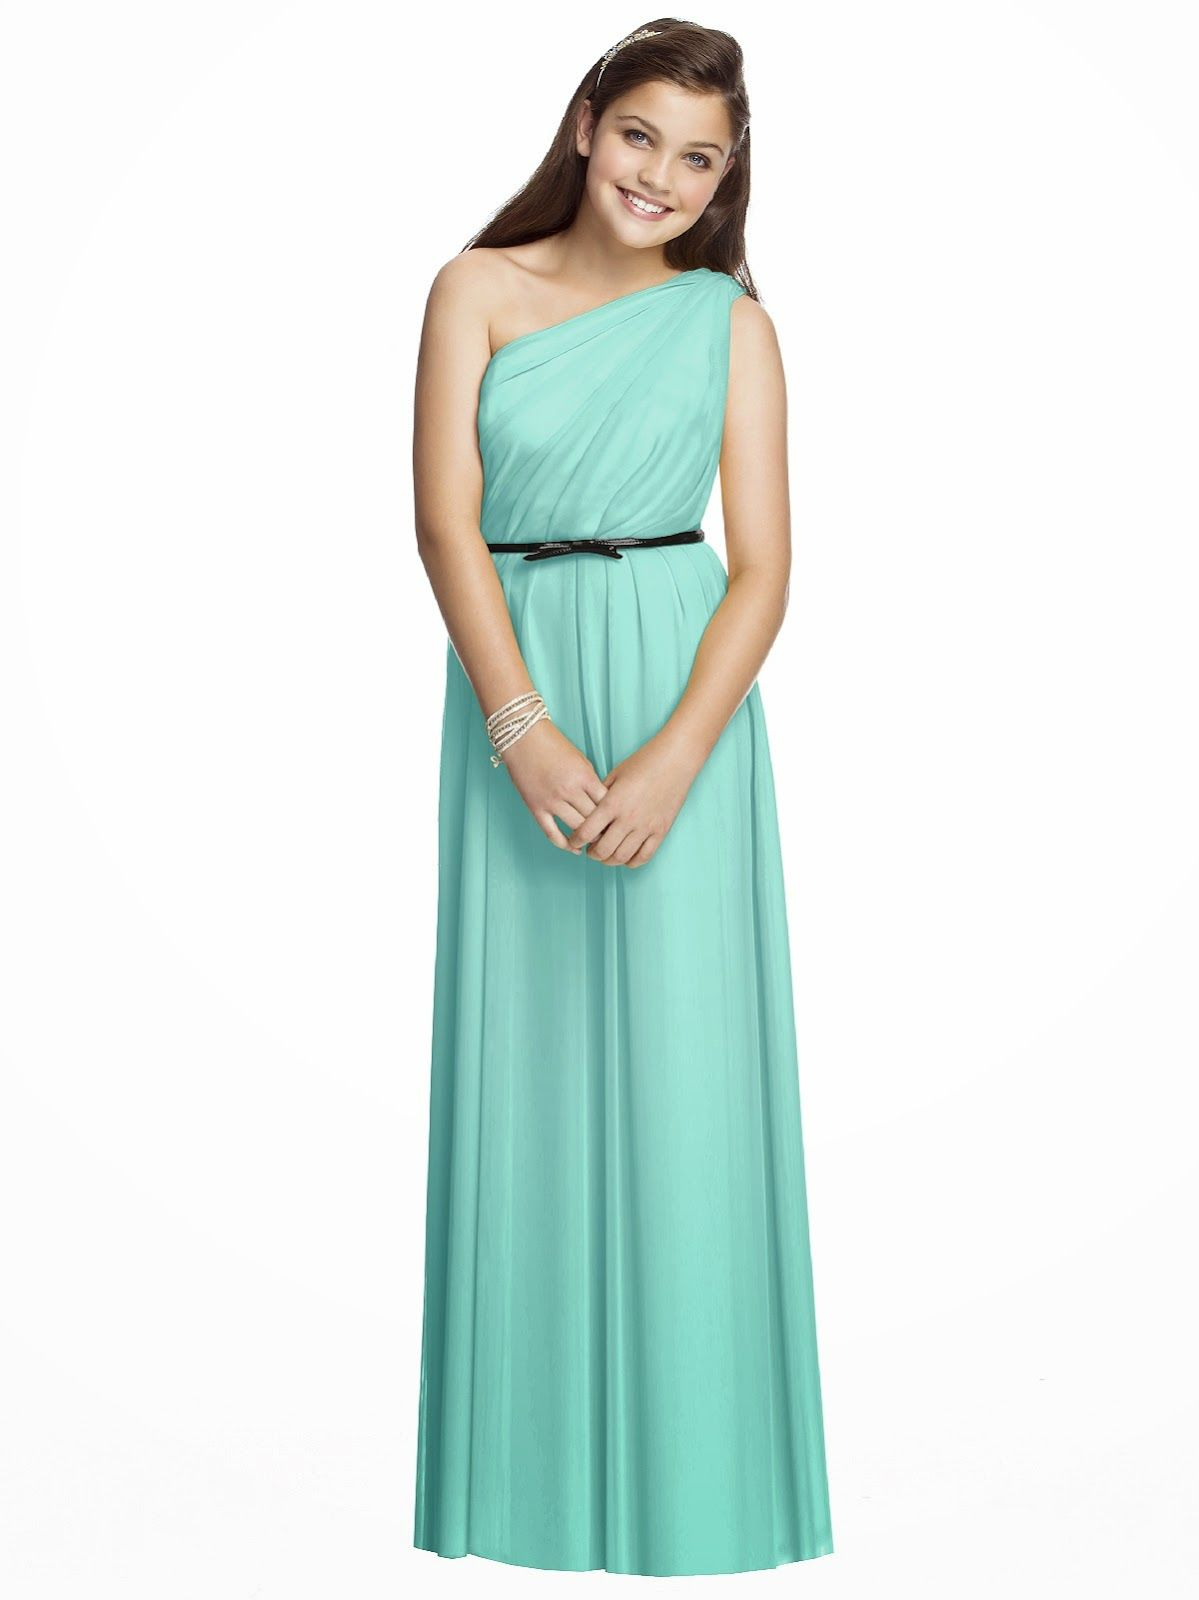 Cheap bridesmaid dresses online top 50 cheap bridesmaid dresses cheap bridesmaid dresses online ombrellifo Gallery